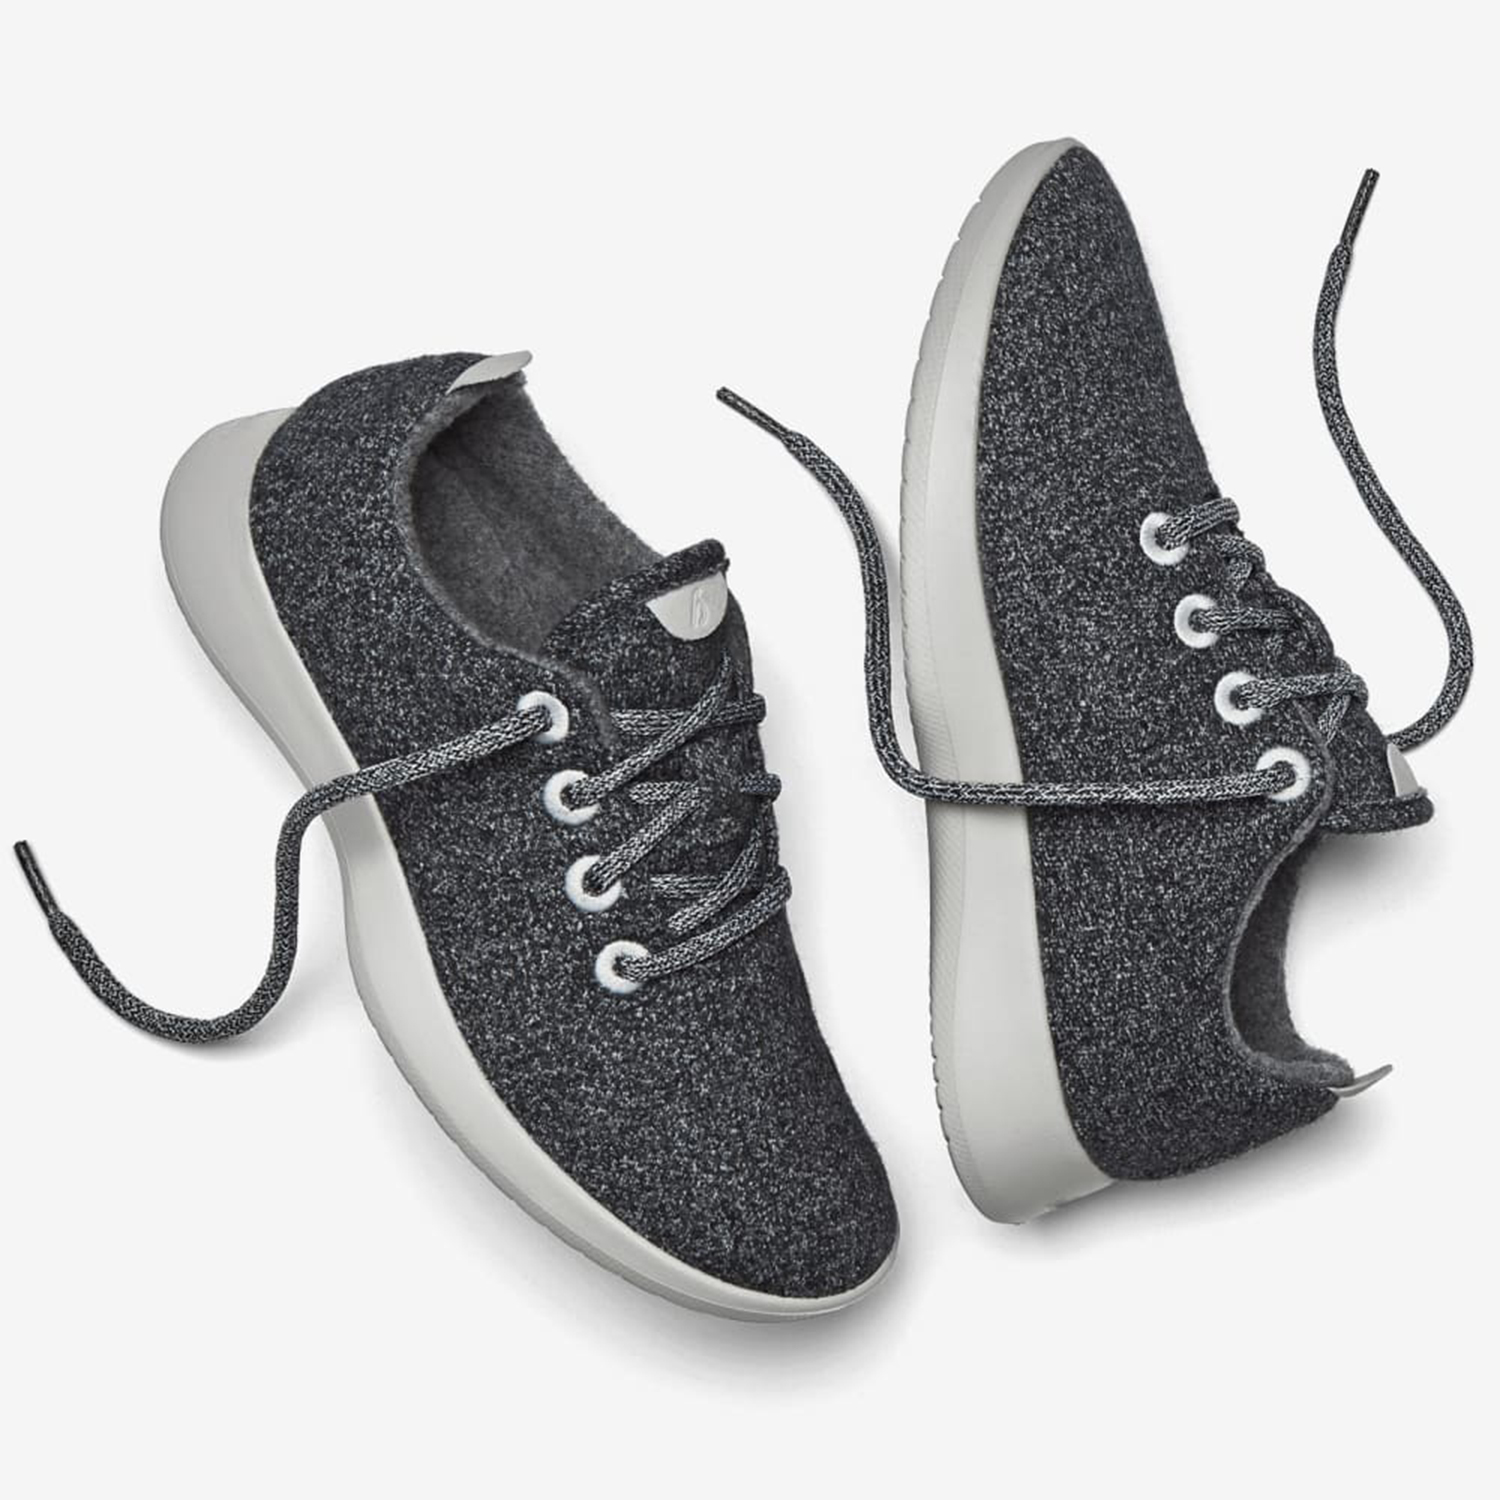 Allbirds Wool Runners Shoes